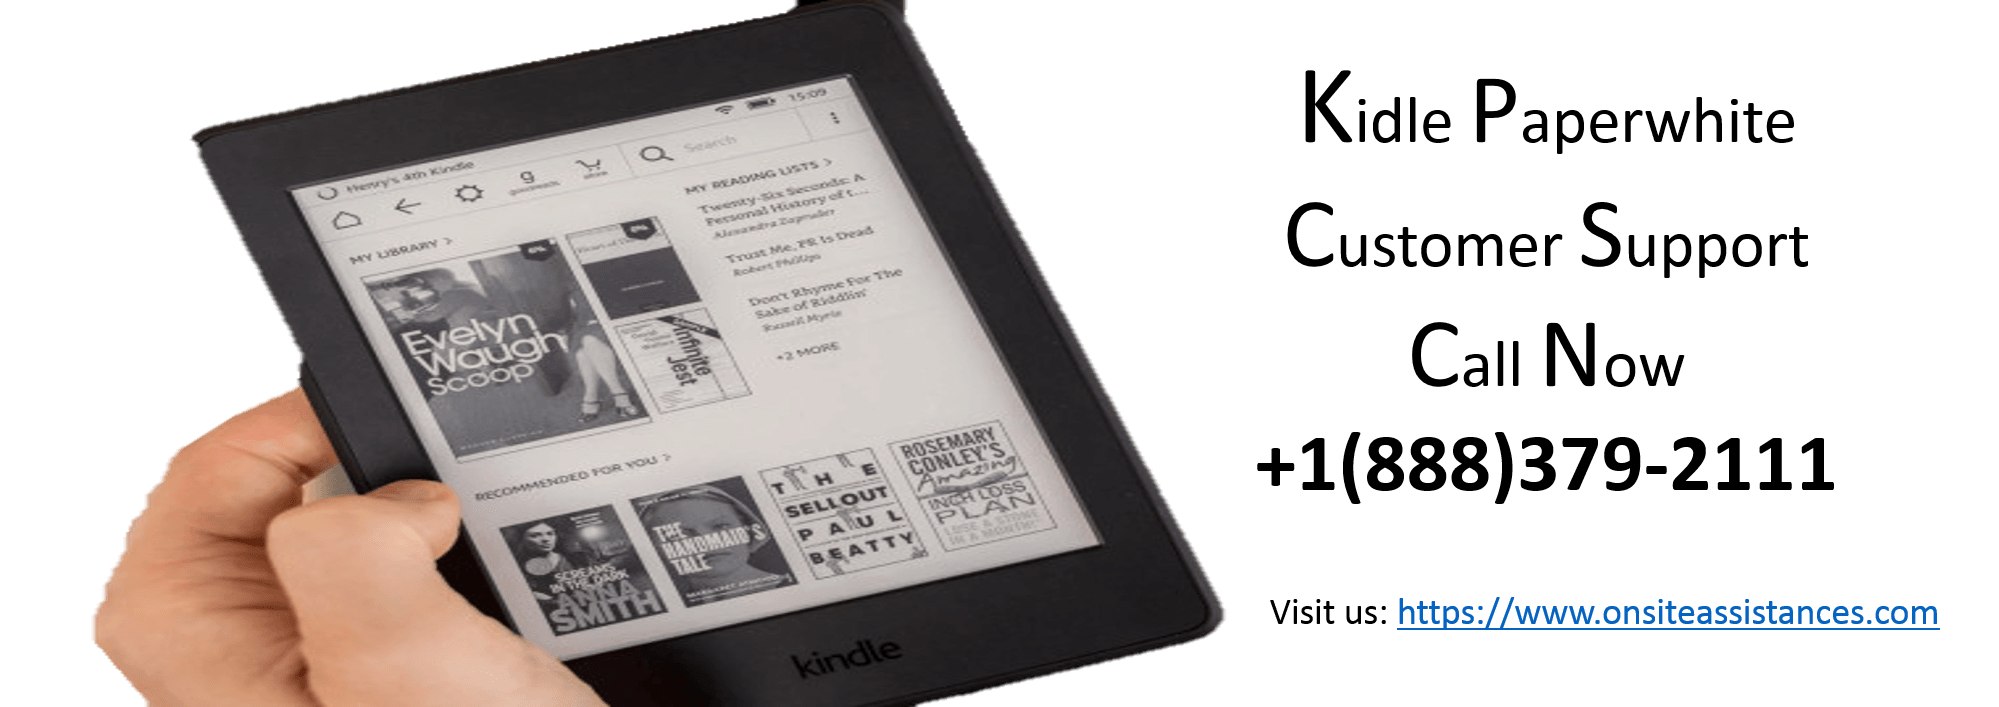 Kindle-paperwhite-customer-support.jpg